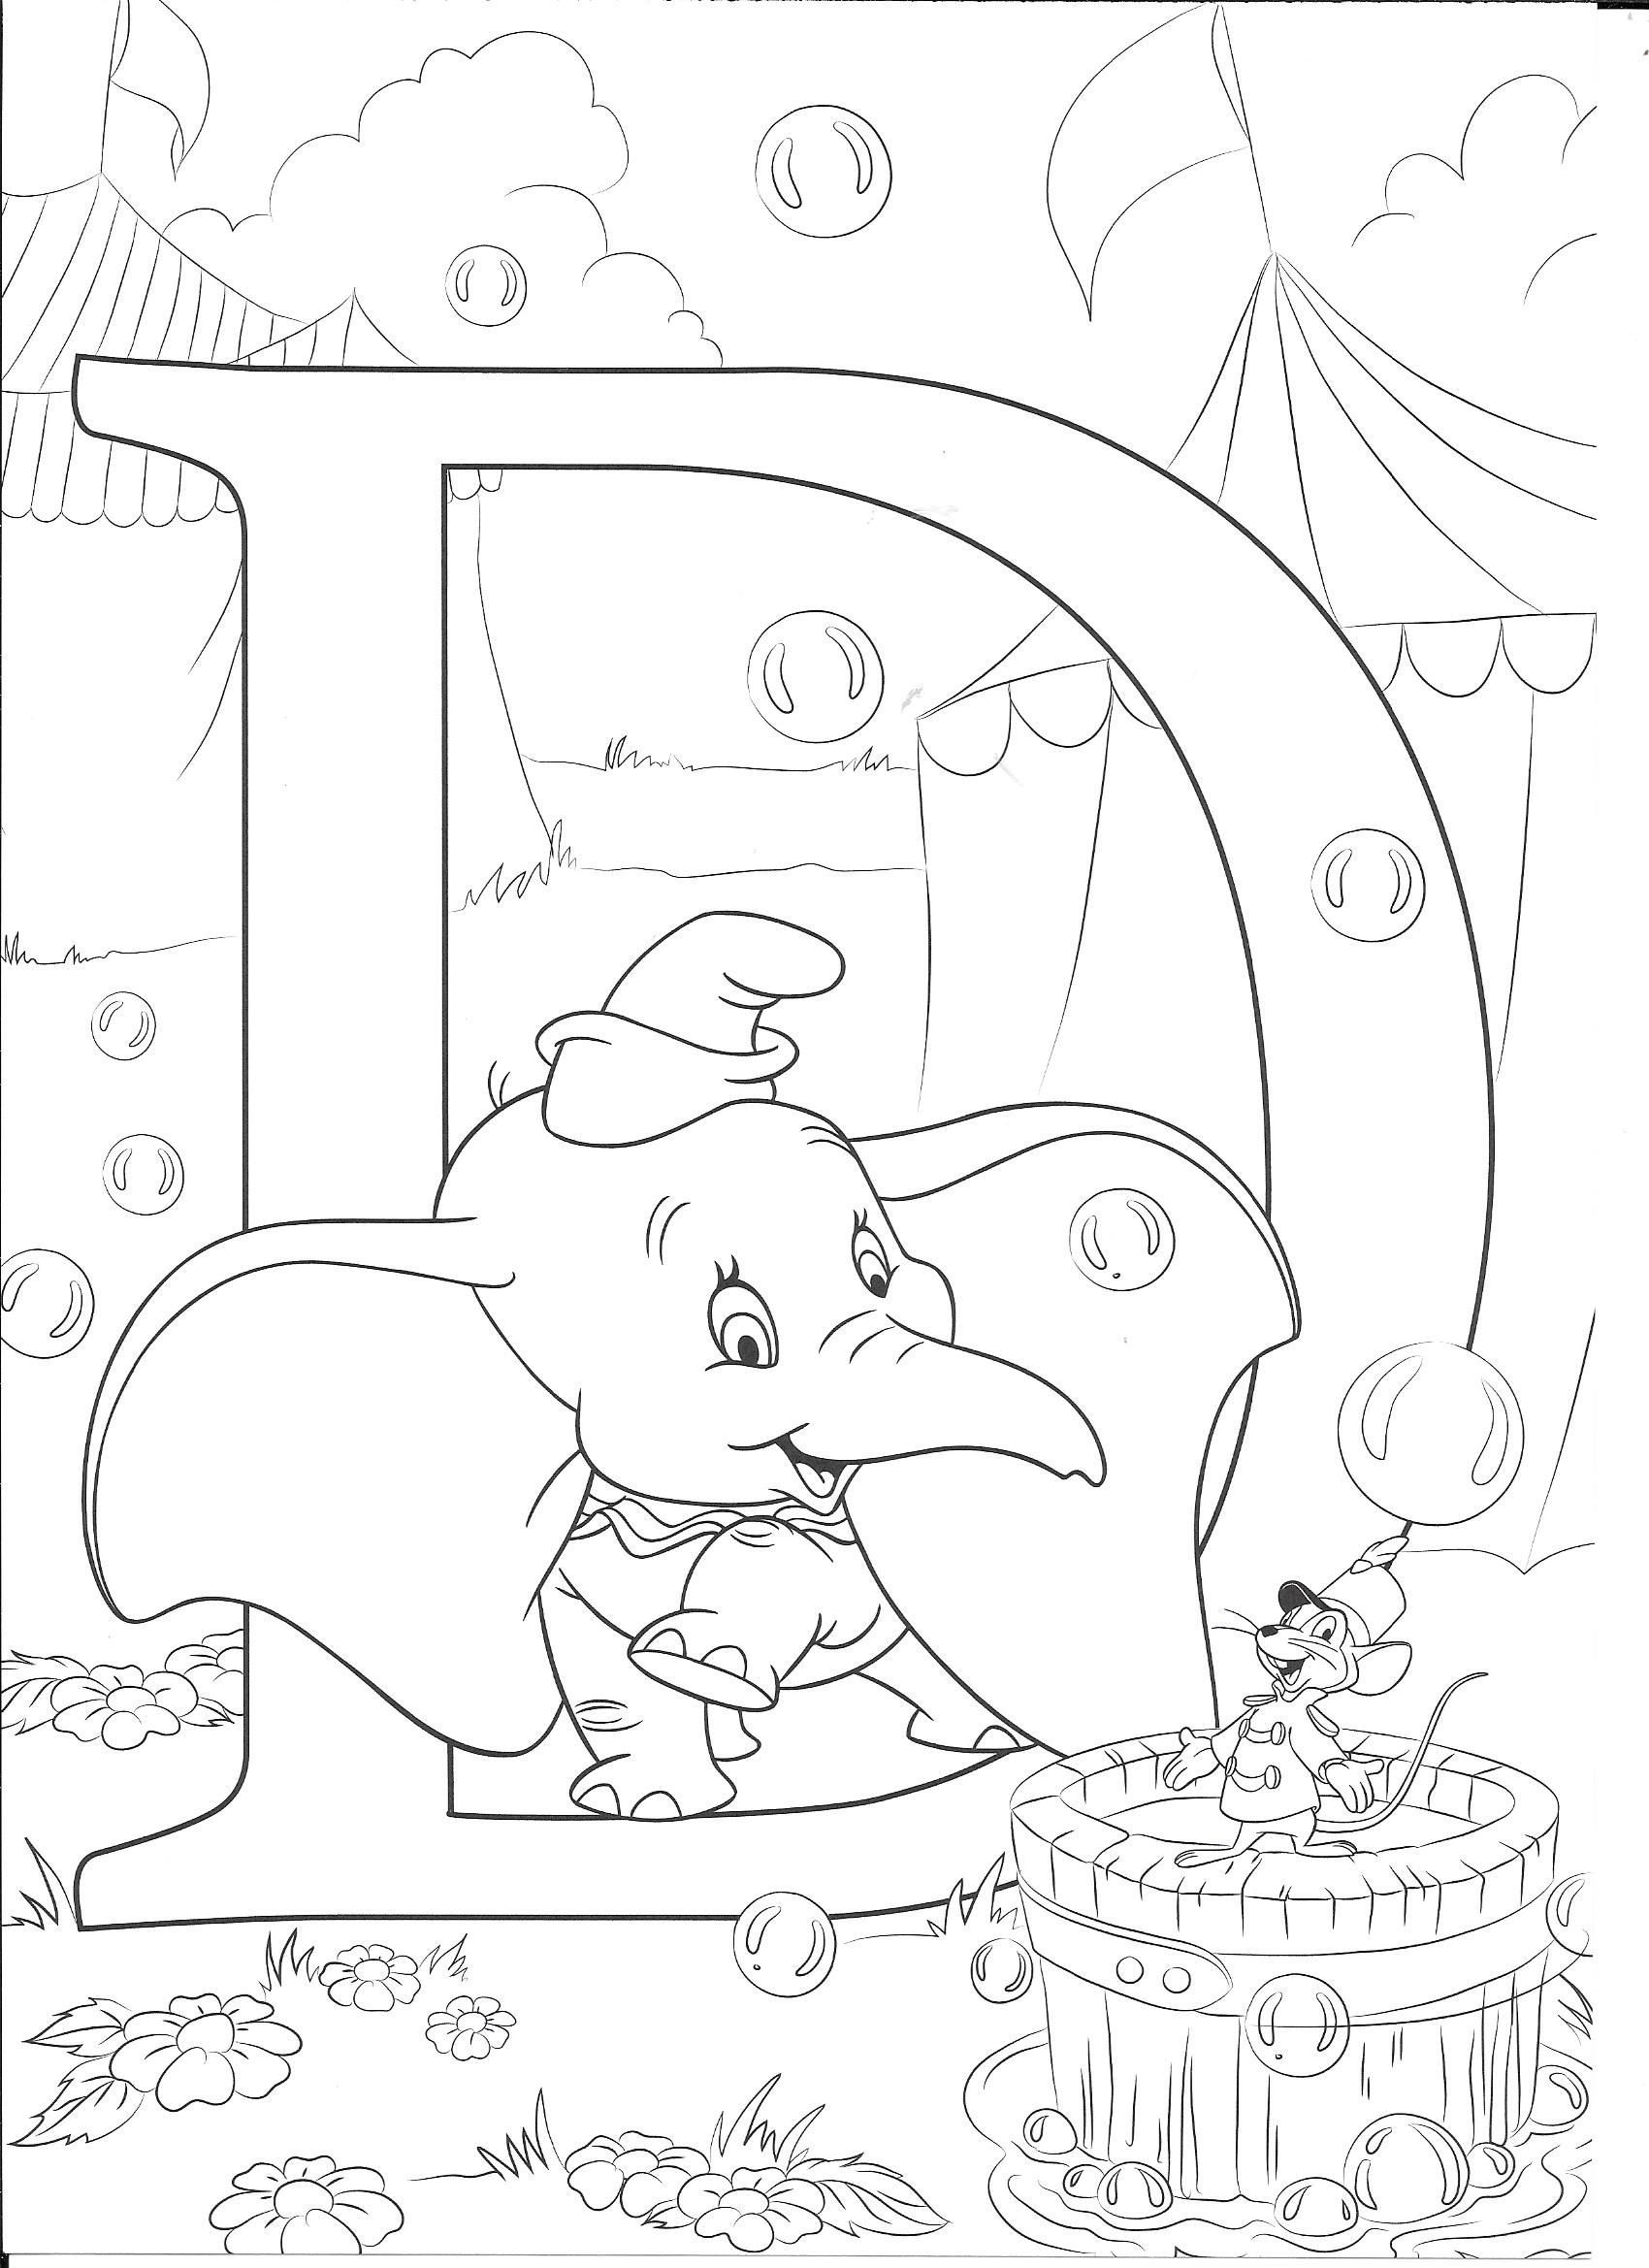 Coloring Page Disney Coloring Pages Printables Abc Coloring Pages Disney Coloring Sheets [ 2338 x 1700 Pixel ]